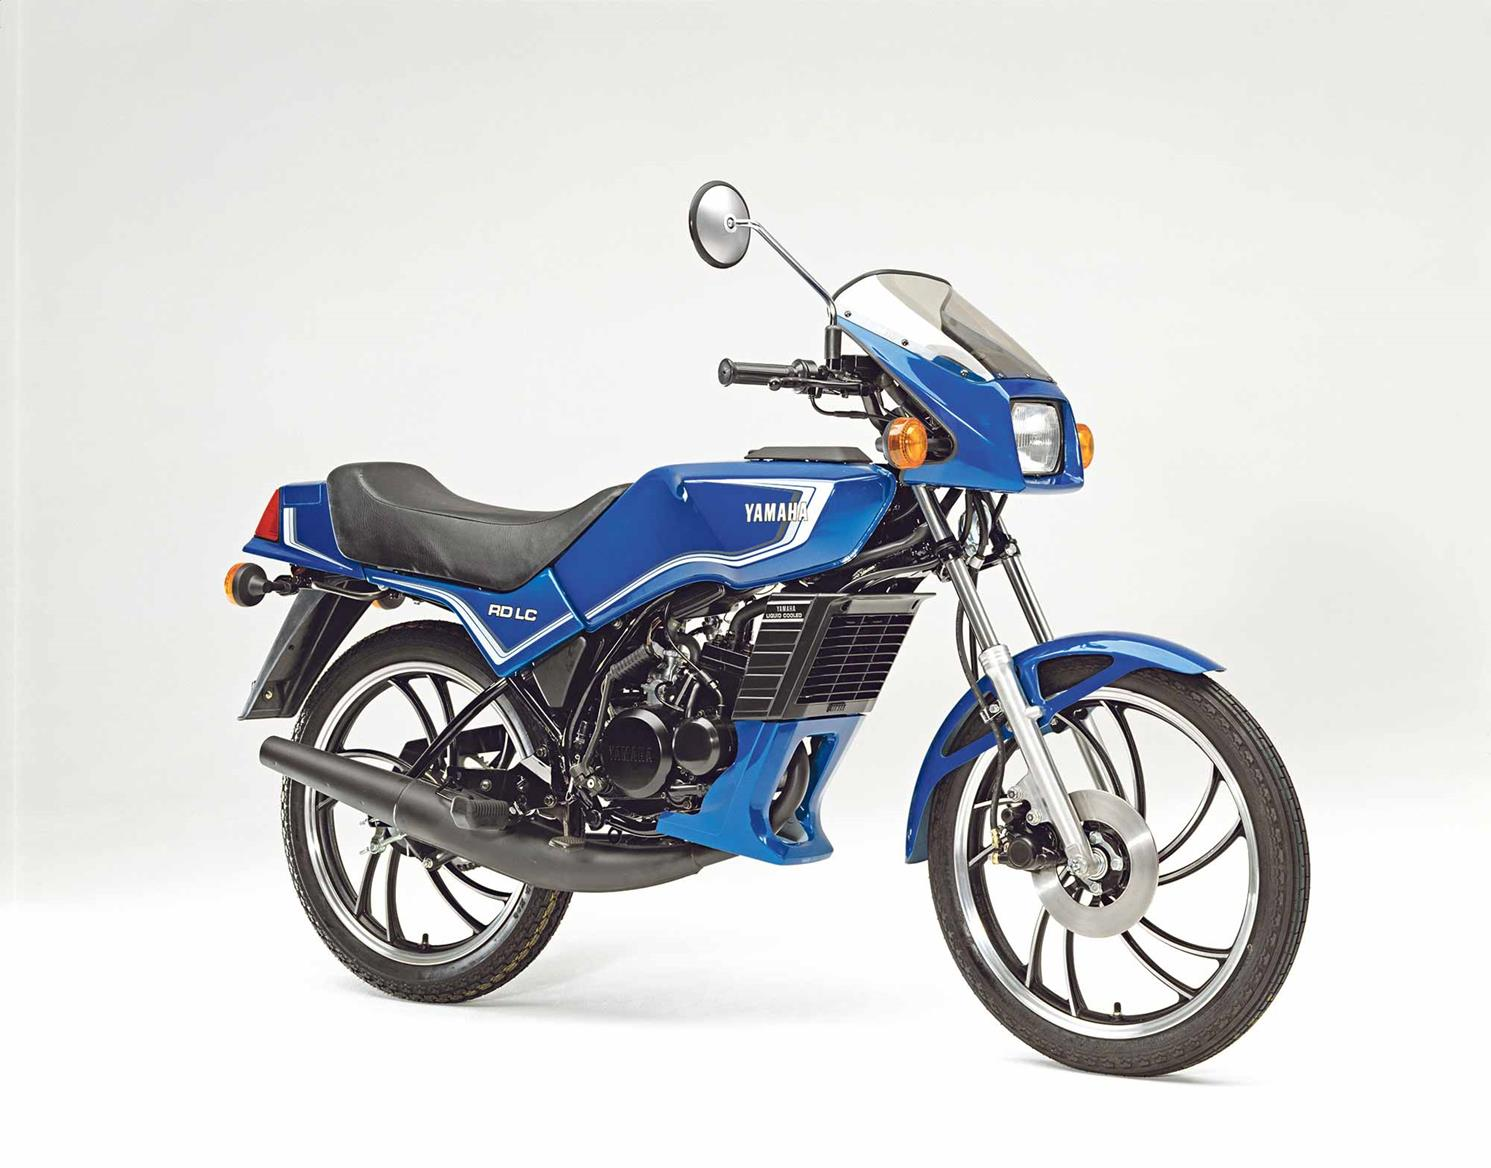 Flint had a succession of two-stroke Yamahas